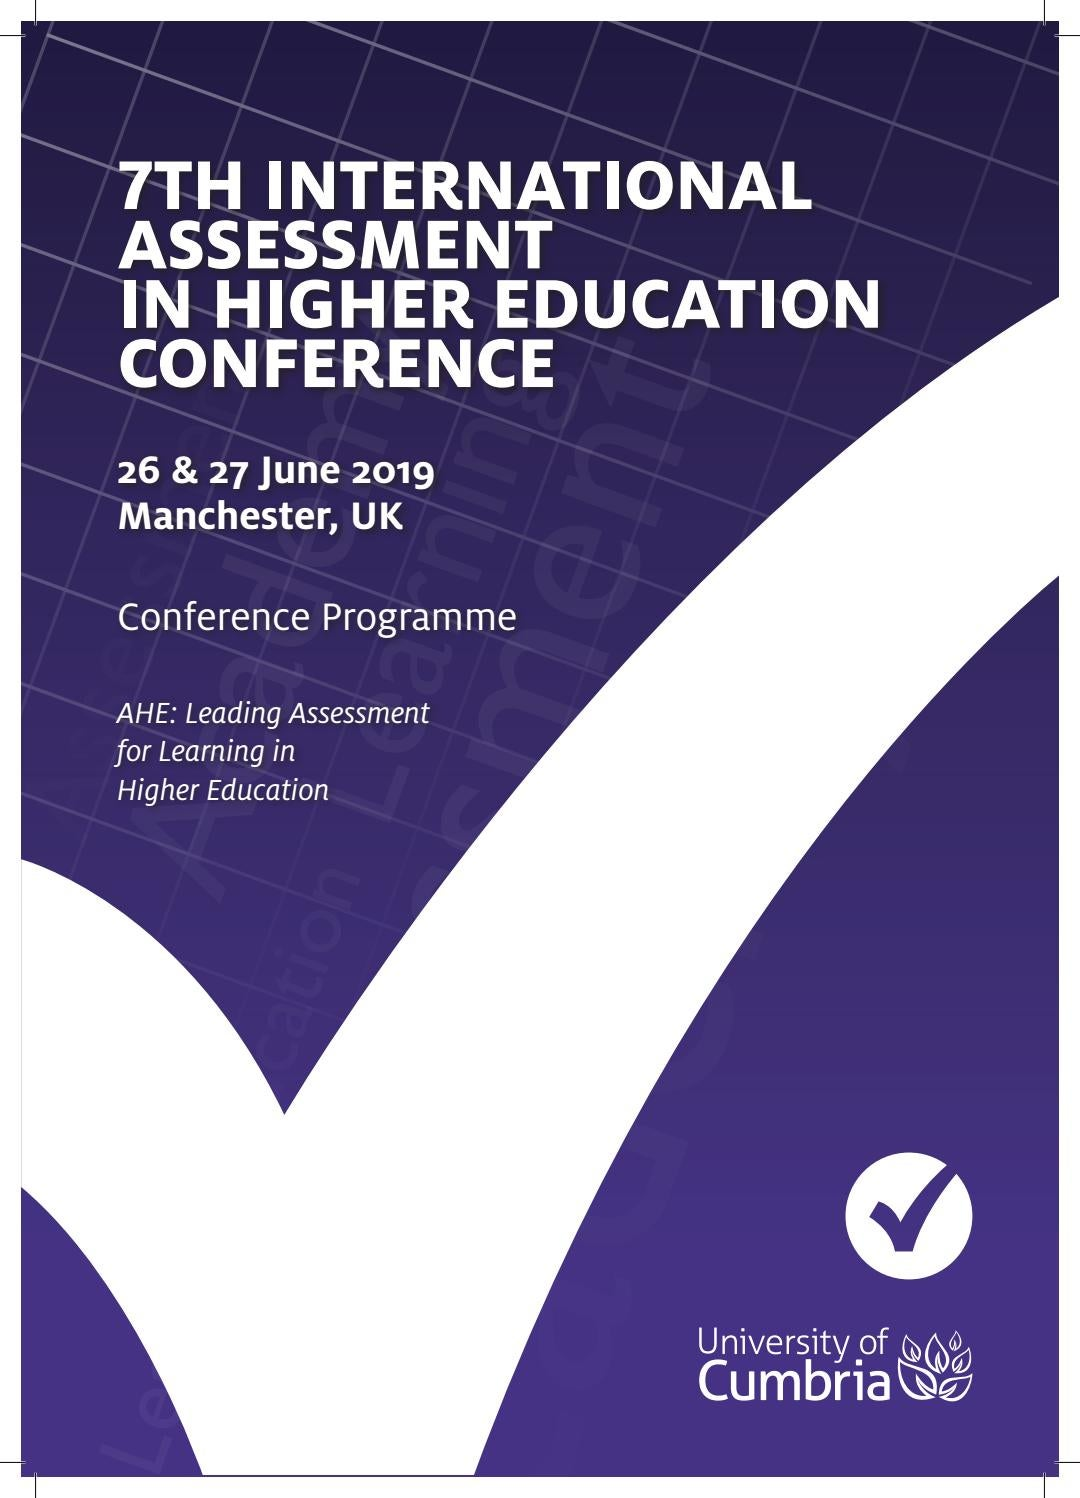 7th International Assessment in Higher Education Conference